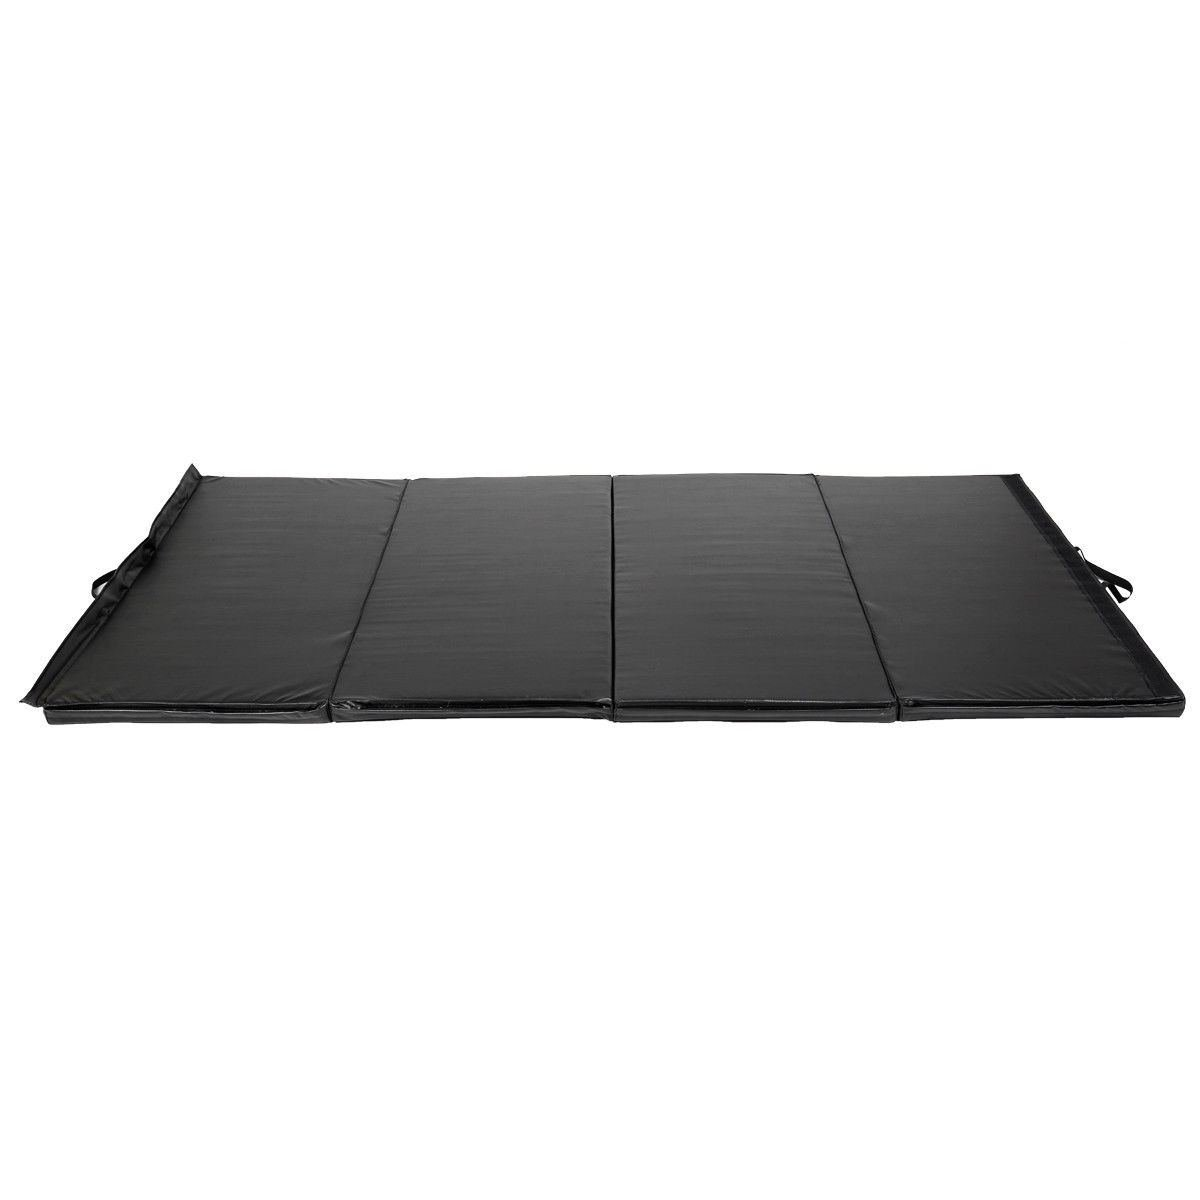 New Black 4'x8'x2'' Thick Folding Panel Gymnastics Mat Gym Fitness Exercise Mat by Yoga Mats (Image #2)